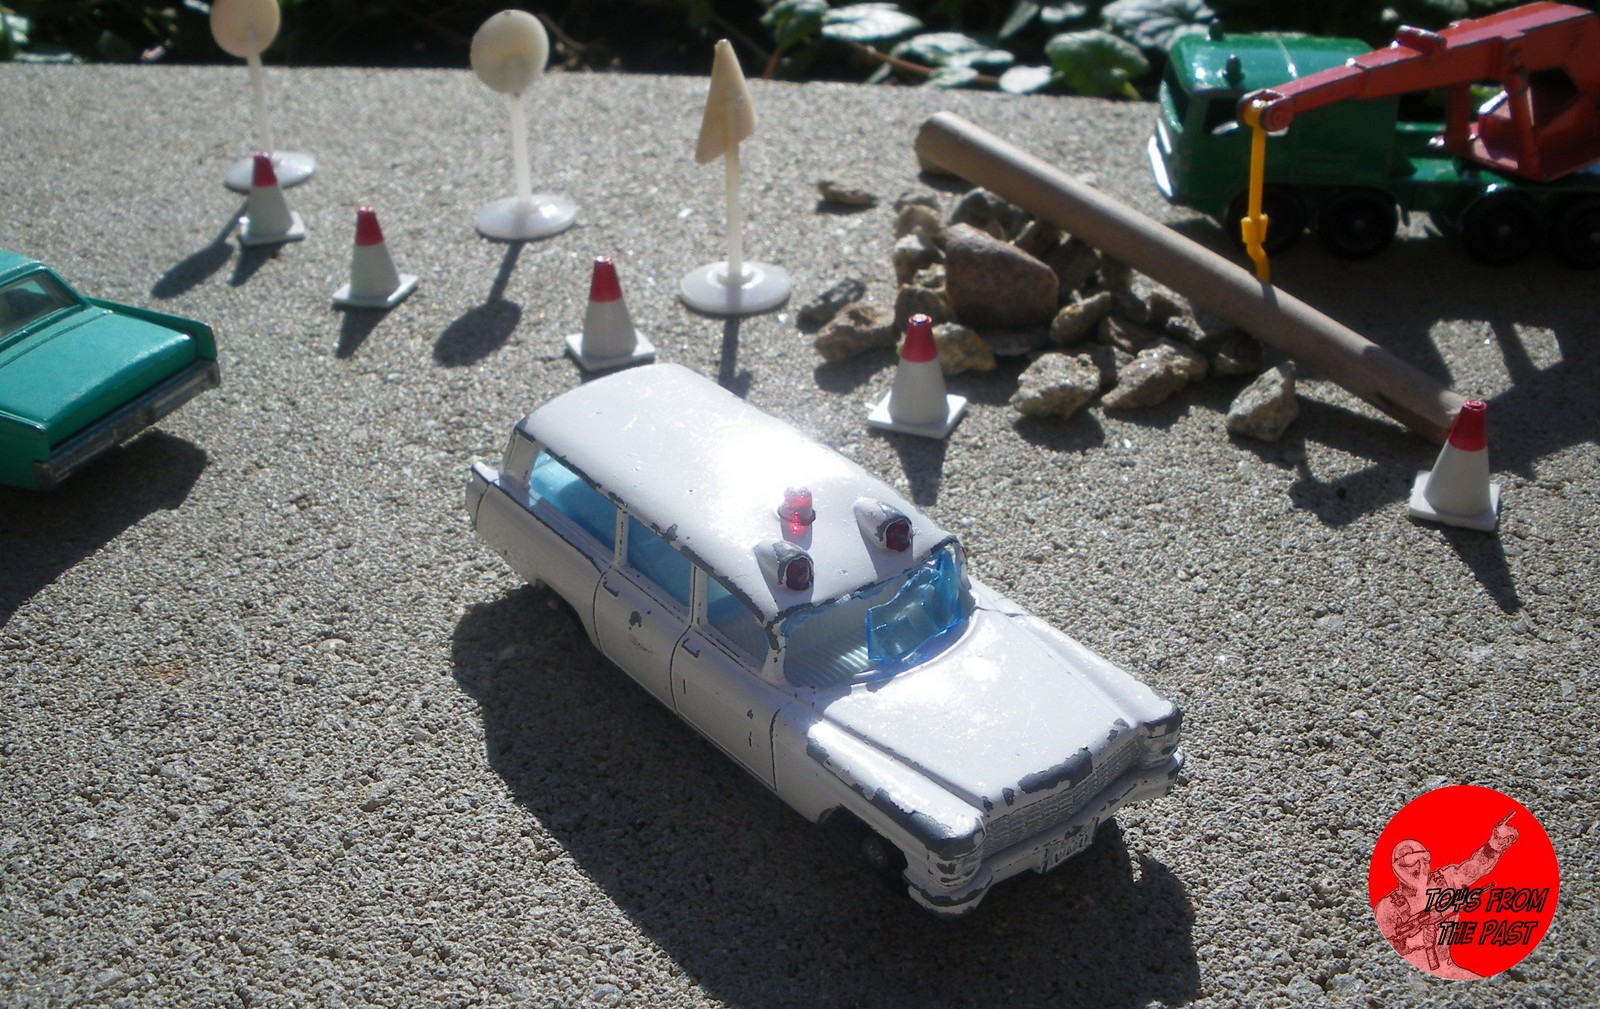 toys from the past 09 01 2012 10 01 2012 nr 54 the cadillac s s ambulance was the first american ambulance released by matchbox in the 1 75 catalogue coexisted a bedford ambulance